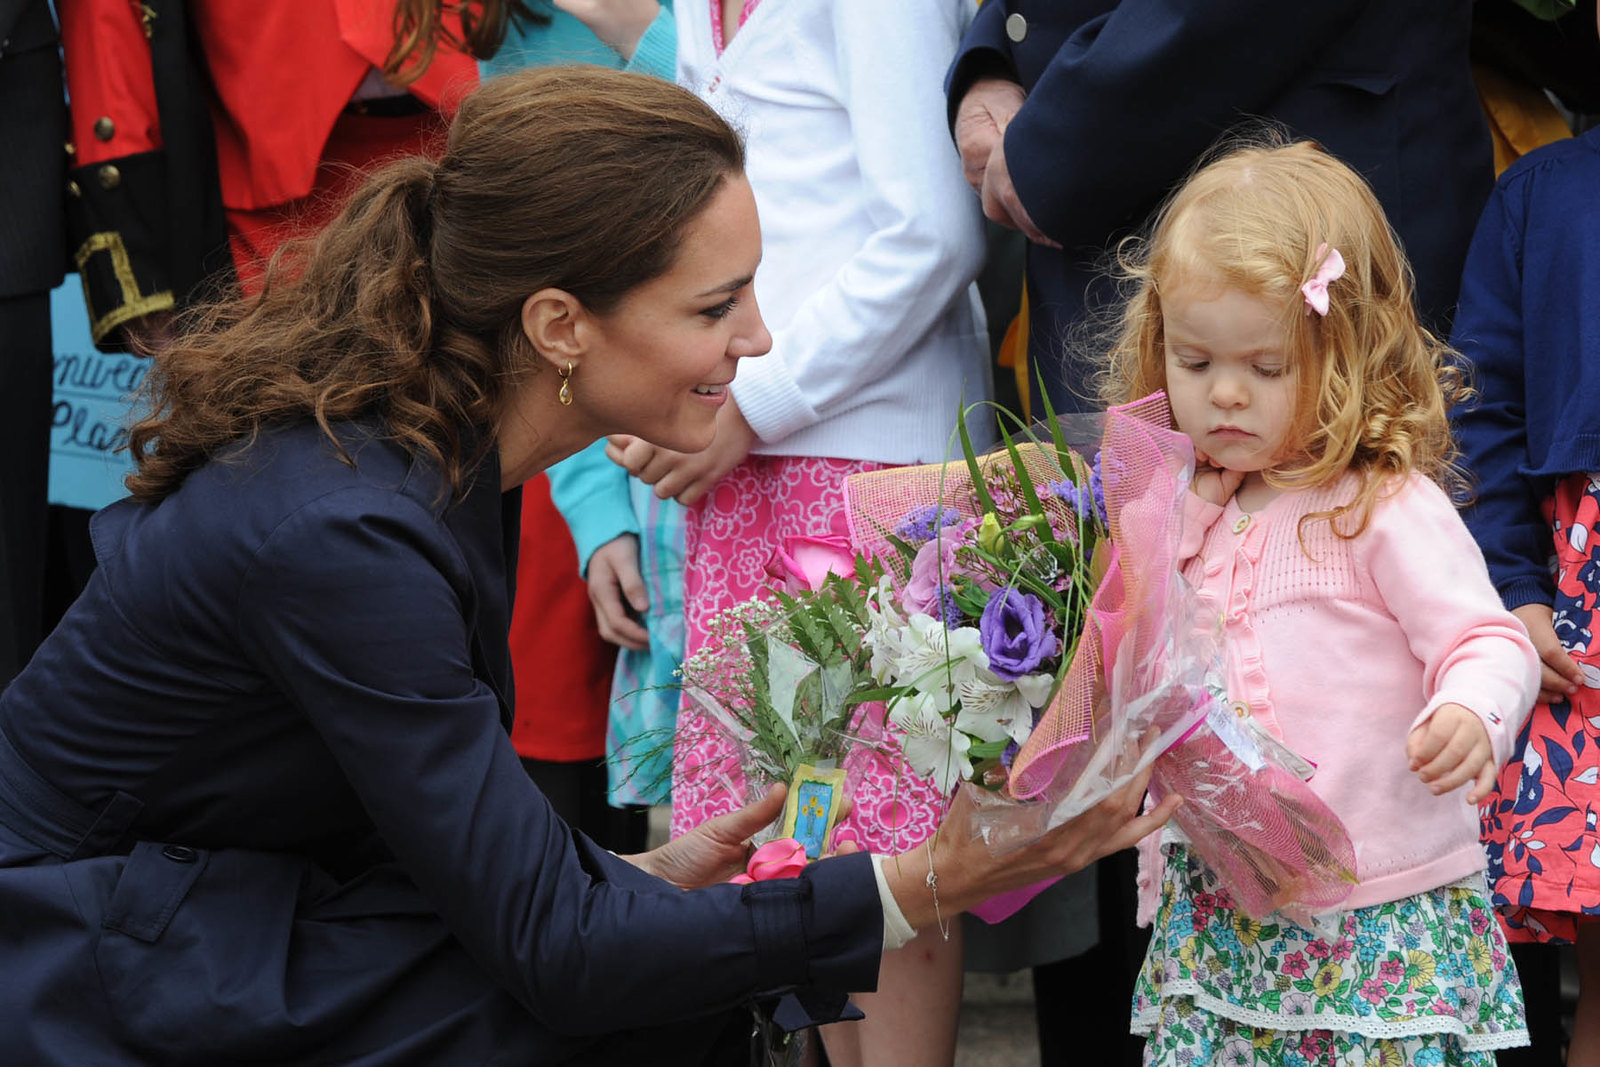 The Duchess of cambrdige received floral welcome in northwest territories